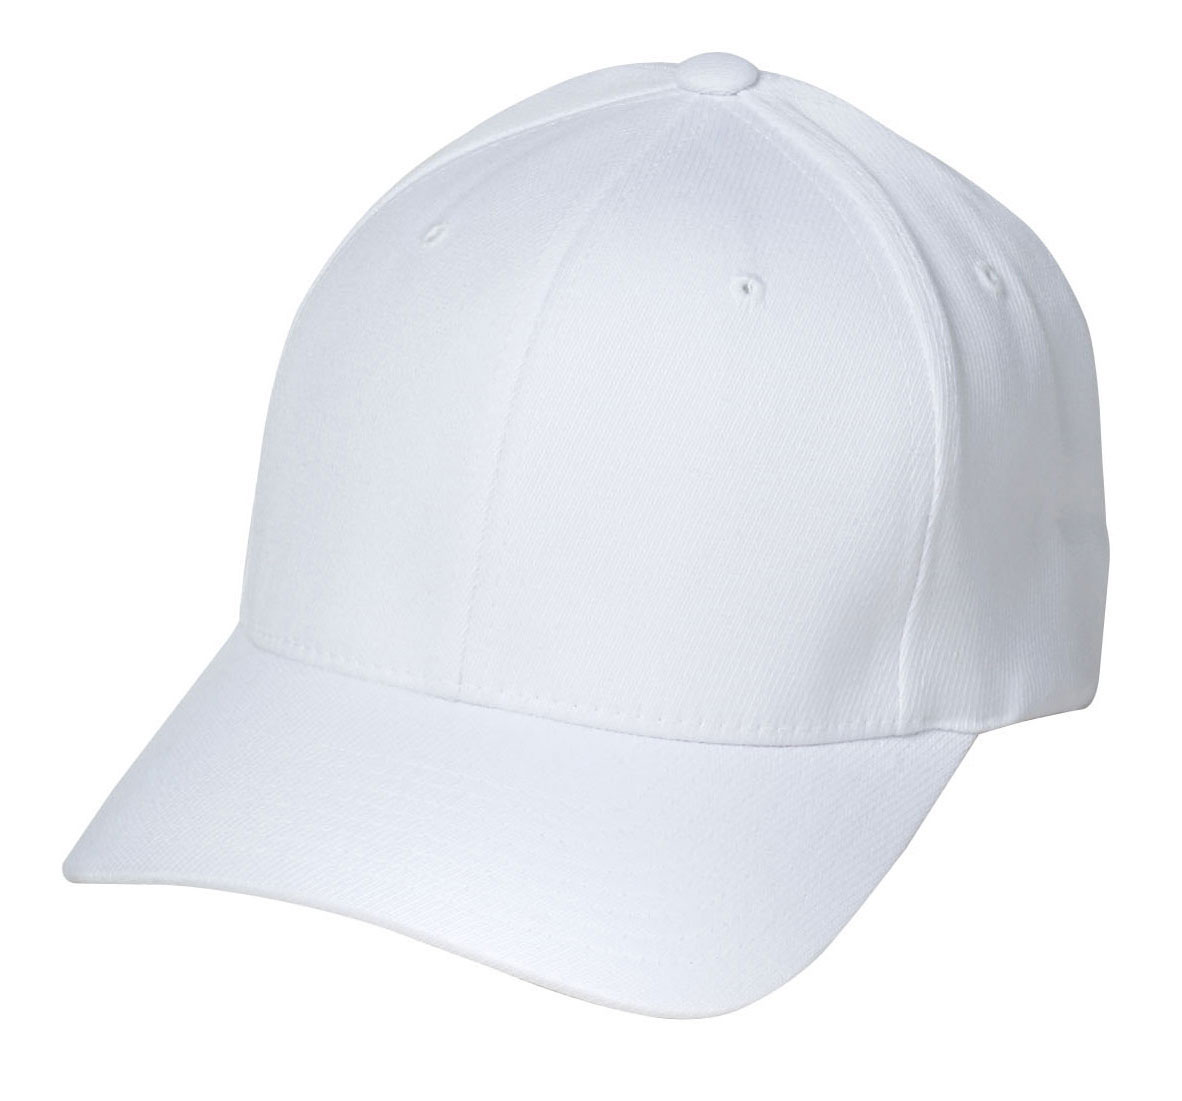 Adult Solid White Football Referee Cap